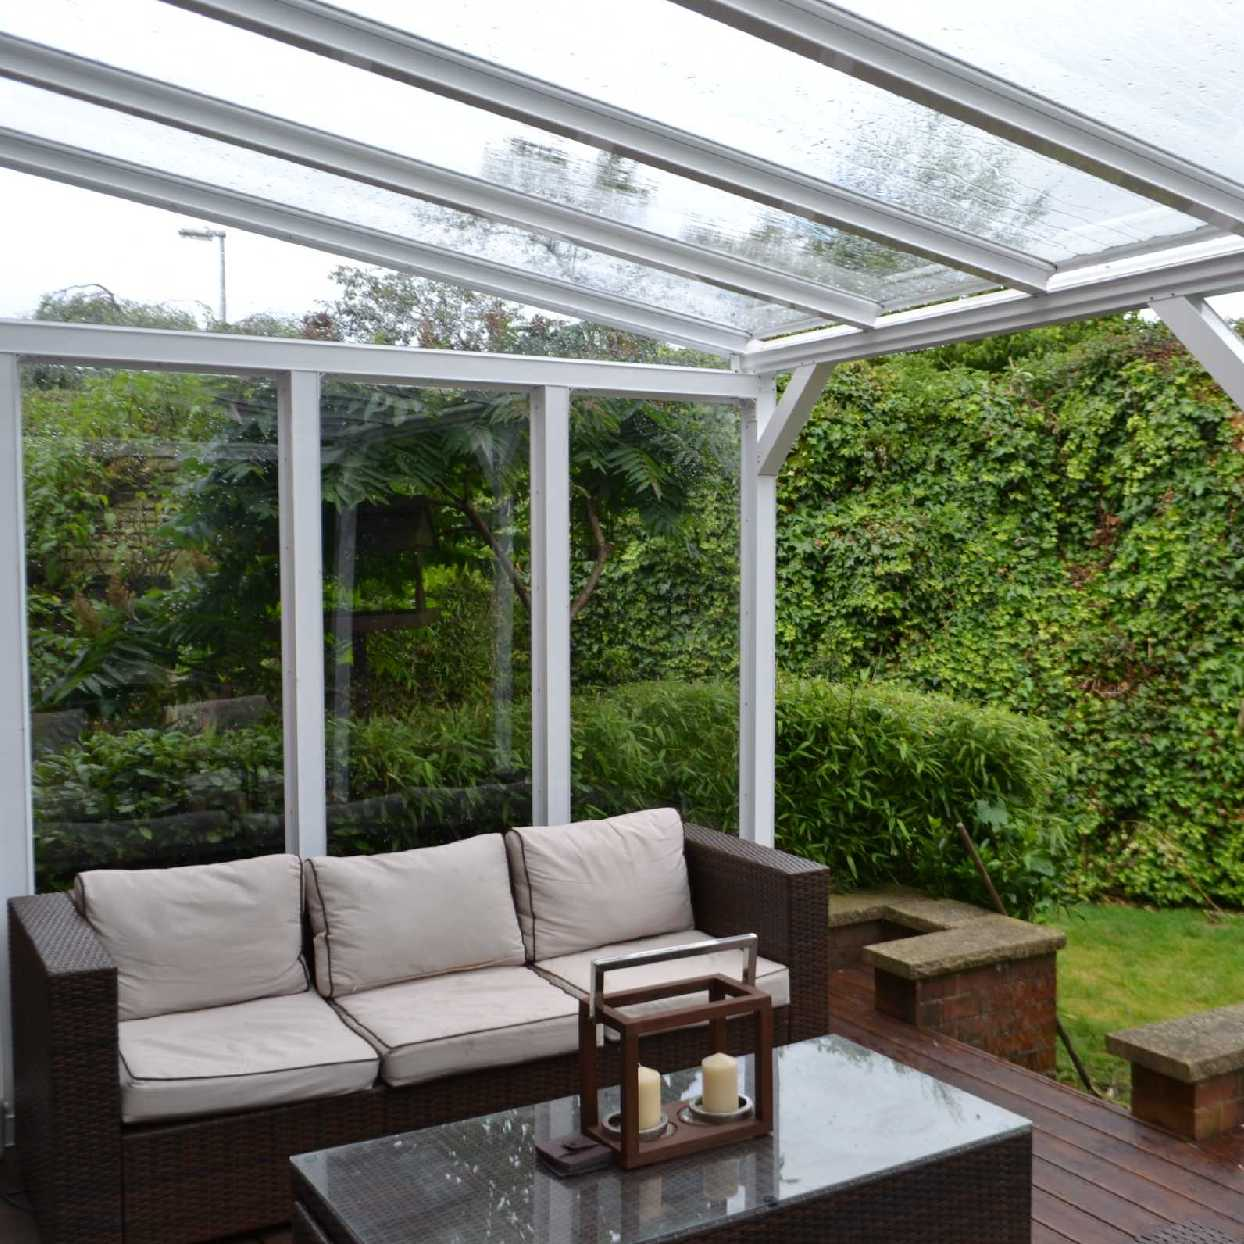 Omega Smart White Lean-To Canopy UNGLAZED for 6mm Glazing - 2.1m (W) x 2.0m (P), (2) Supporting Posts